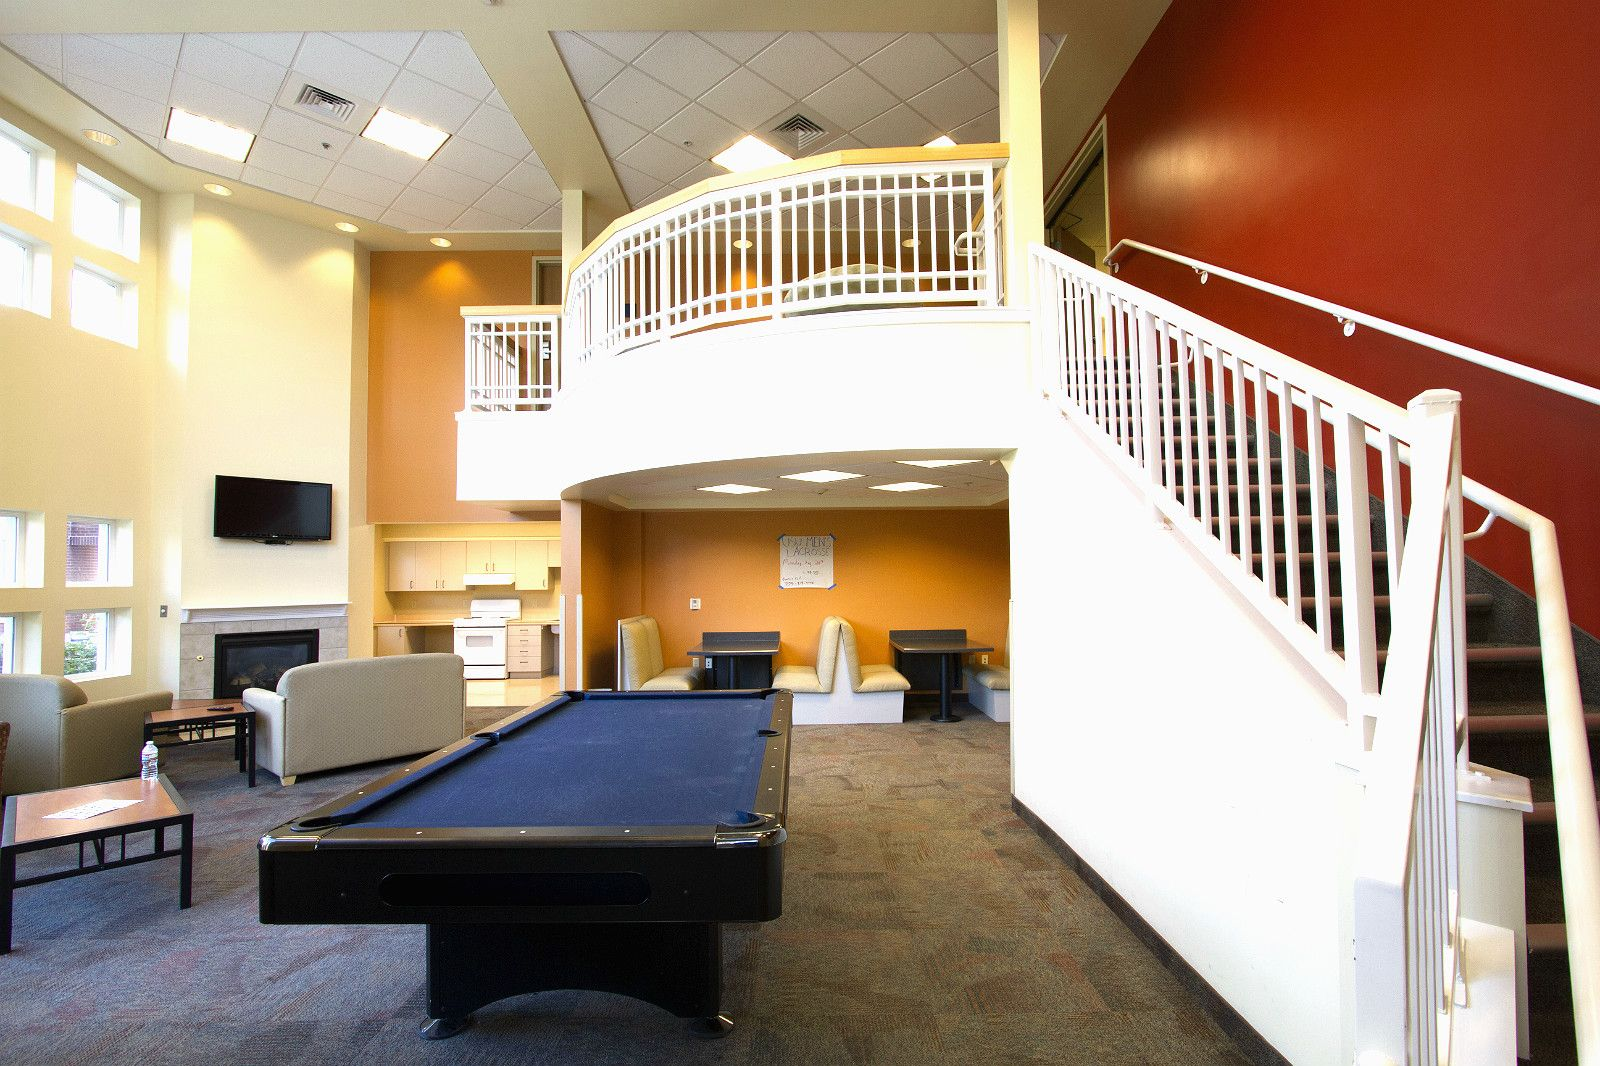 Each floor has a sweet lounge area with a flat screen TV, gas fire ...